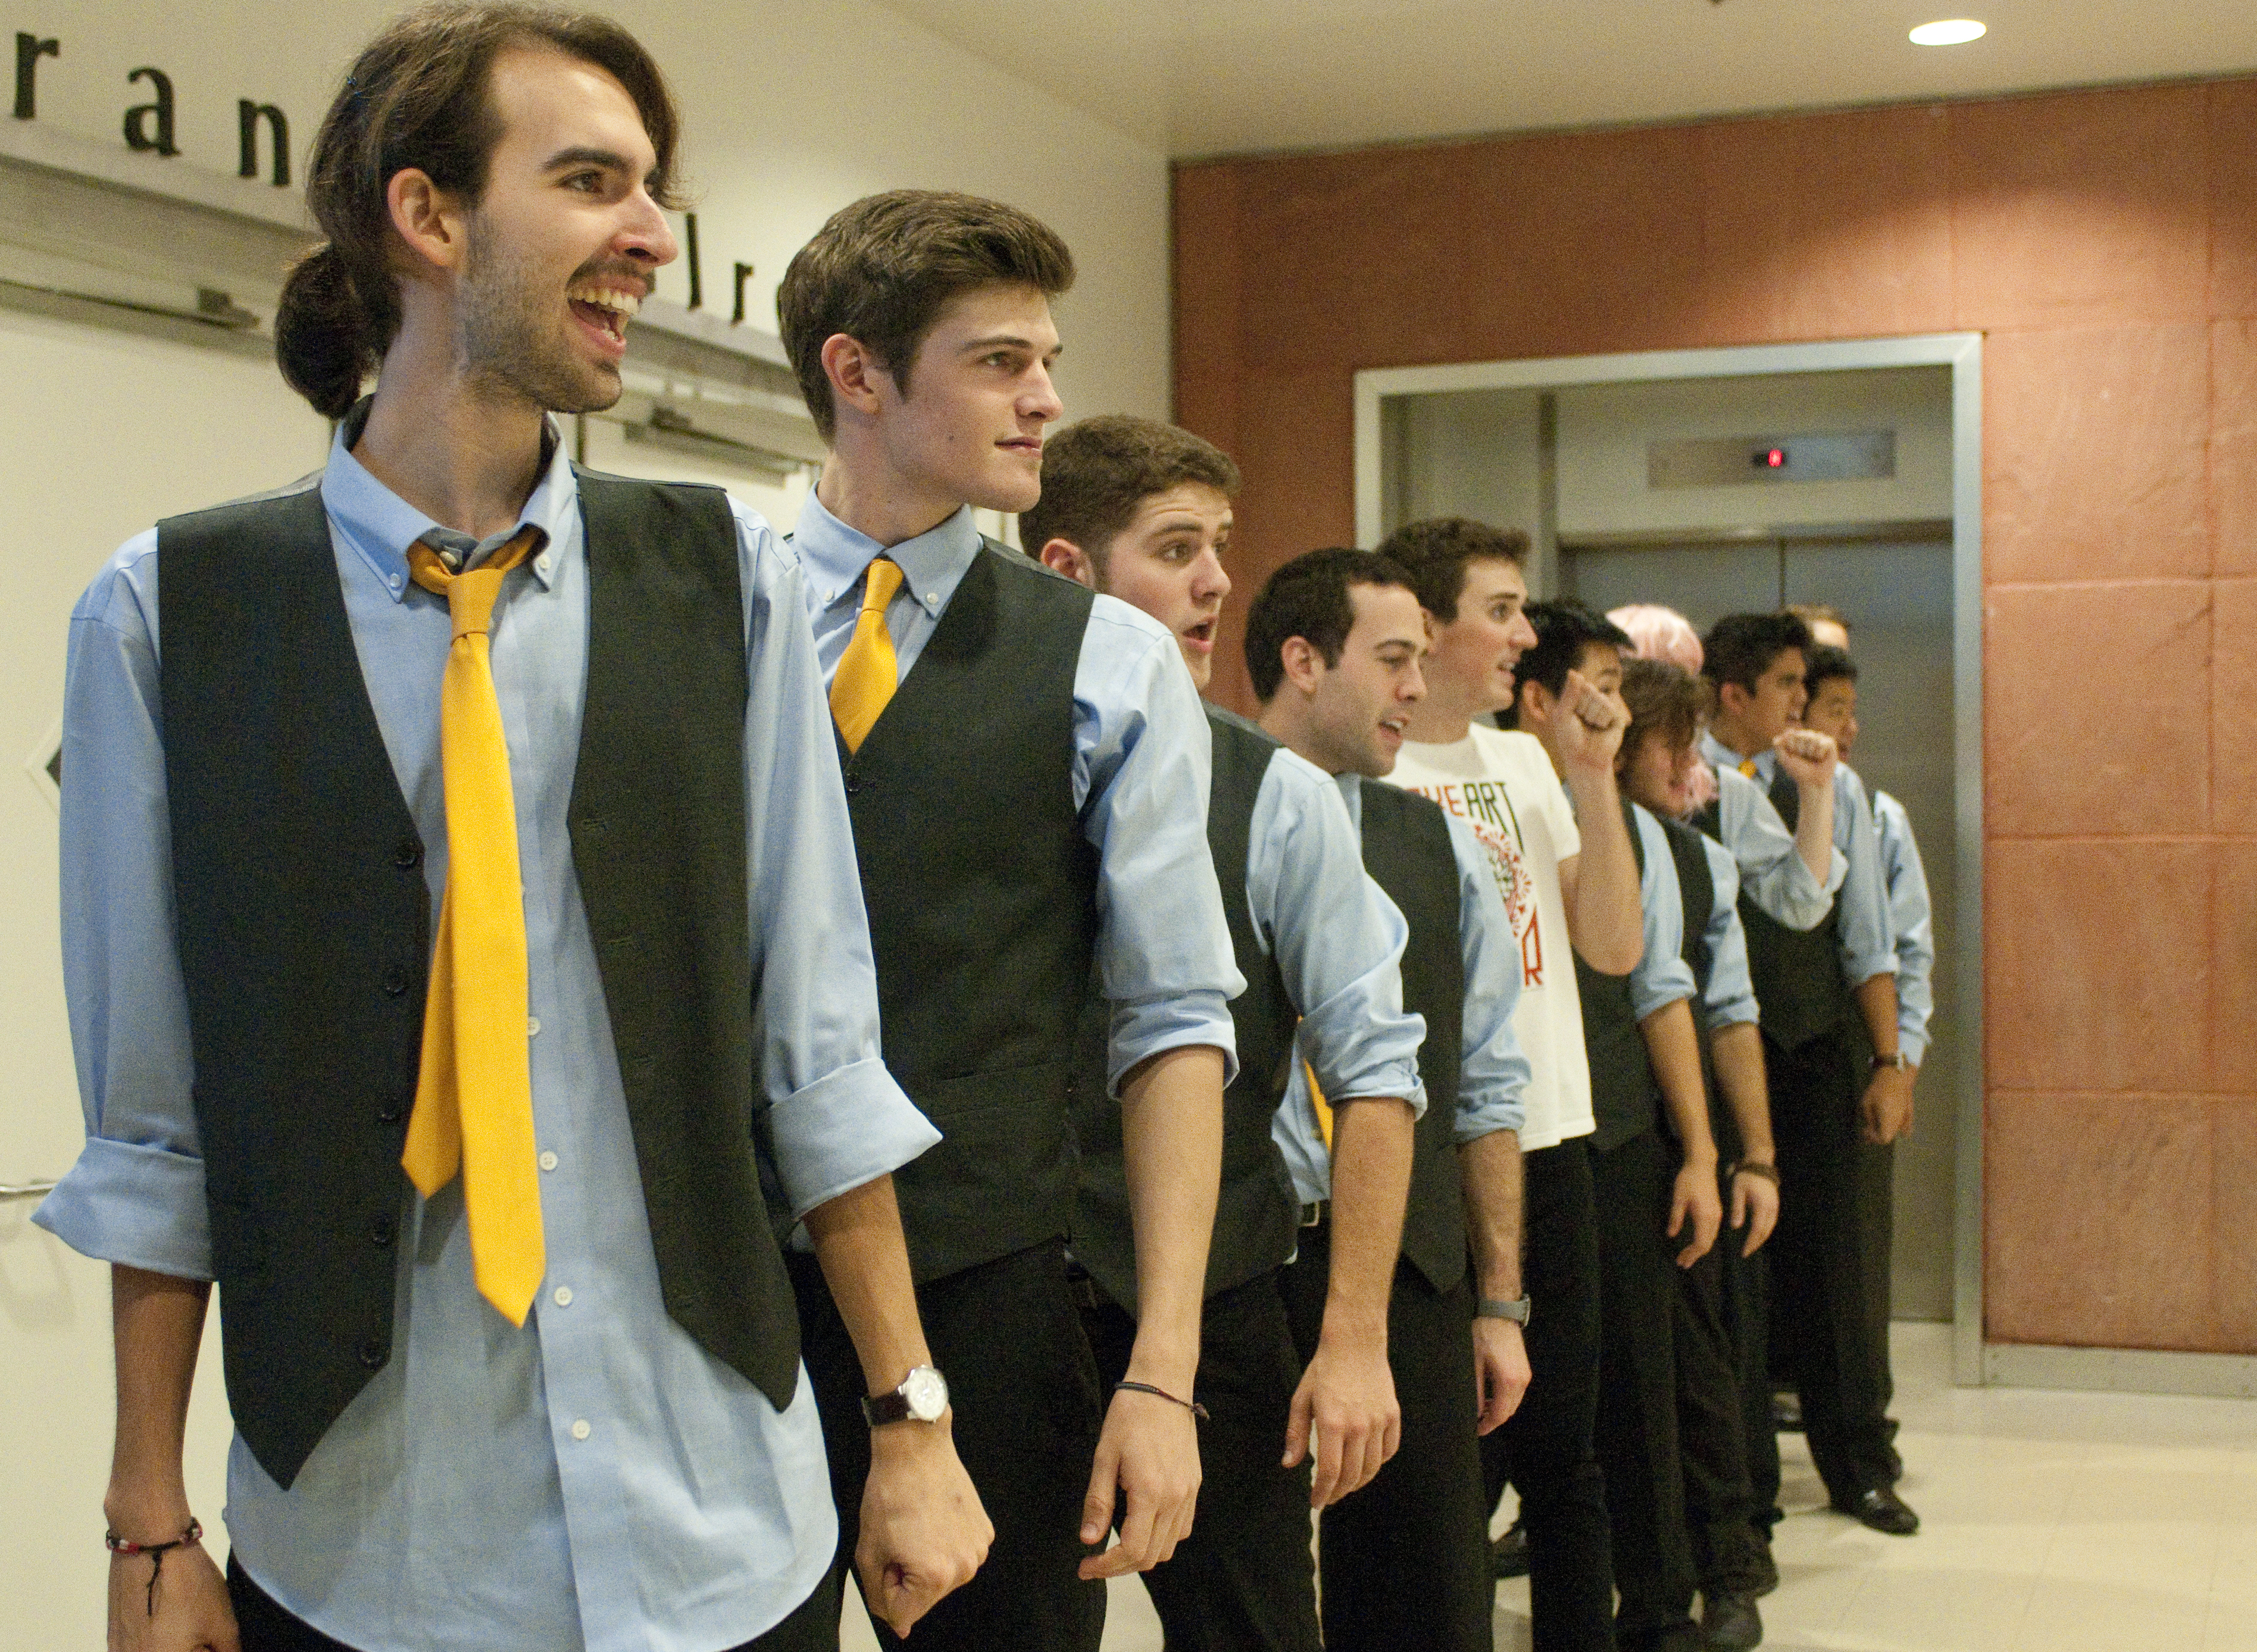 Bruin Harmony is holding its annual fall concert in the Charles E. Young Grand Salon today. Doors open at 8 p.m. and the performance will feature the Scattertones, along with a pudding eating contest, audience prizes and even a secret musical guest.